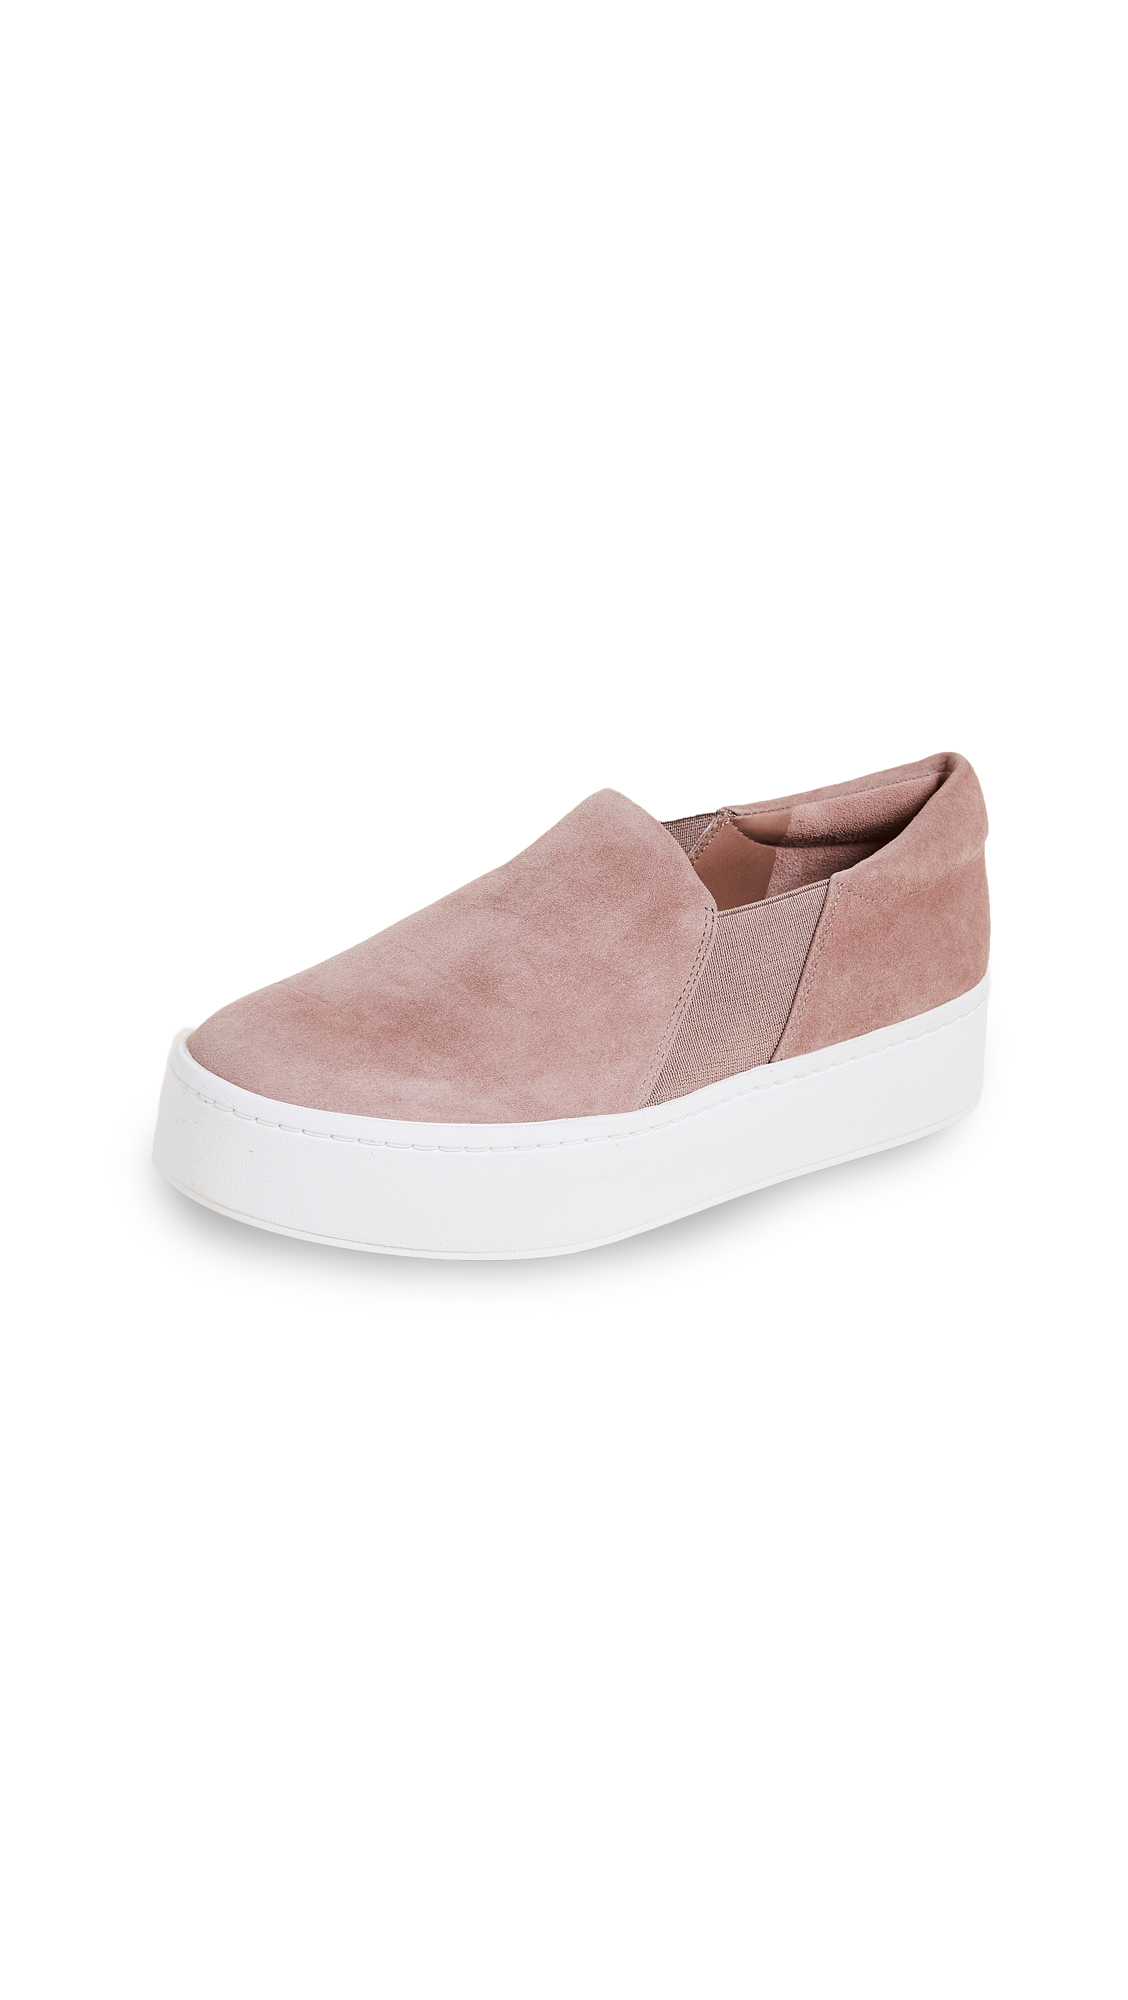 Photo of Vince Warren Platform Slip On Sneakers online shoes sales